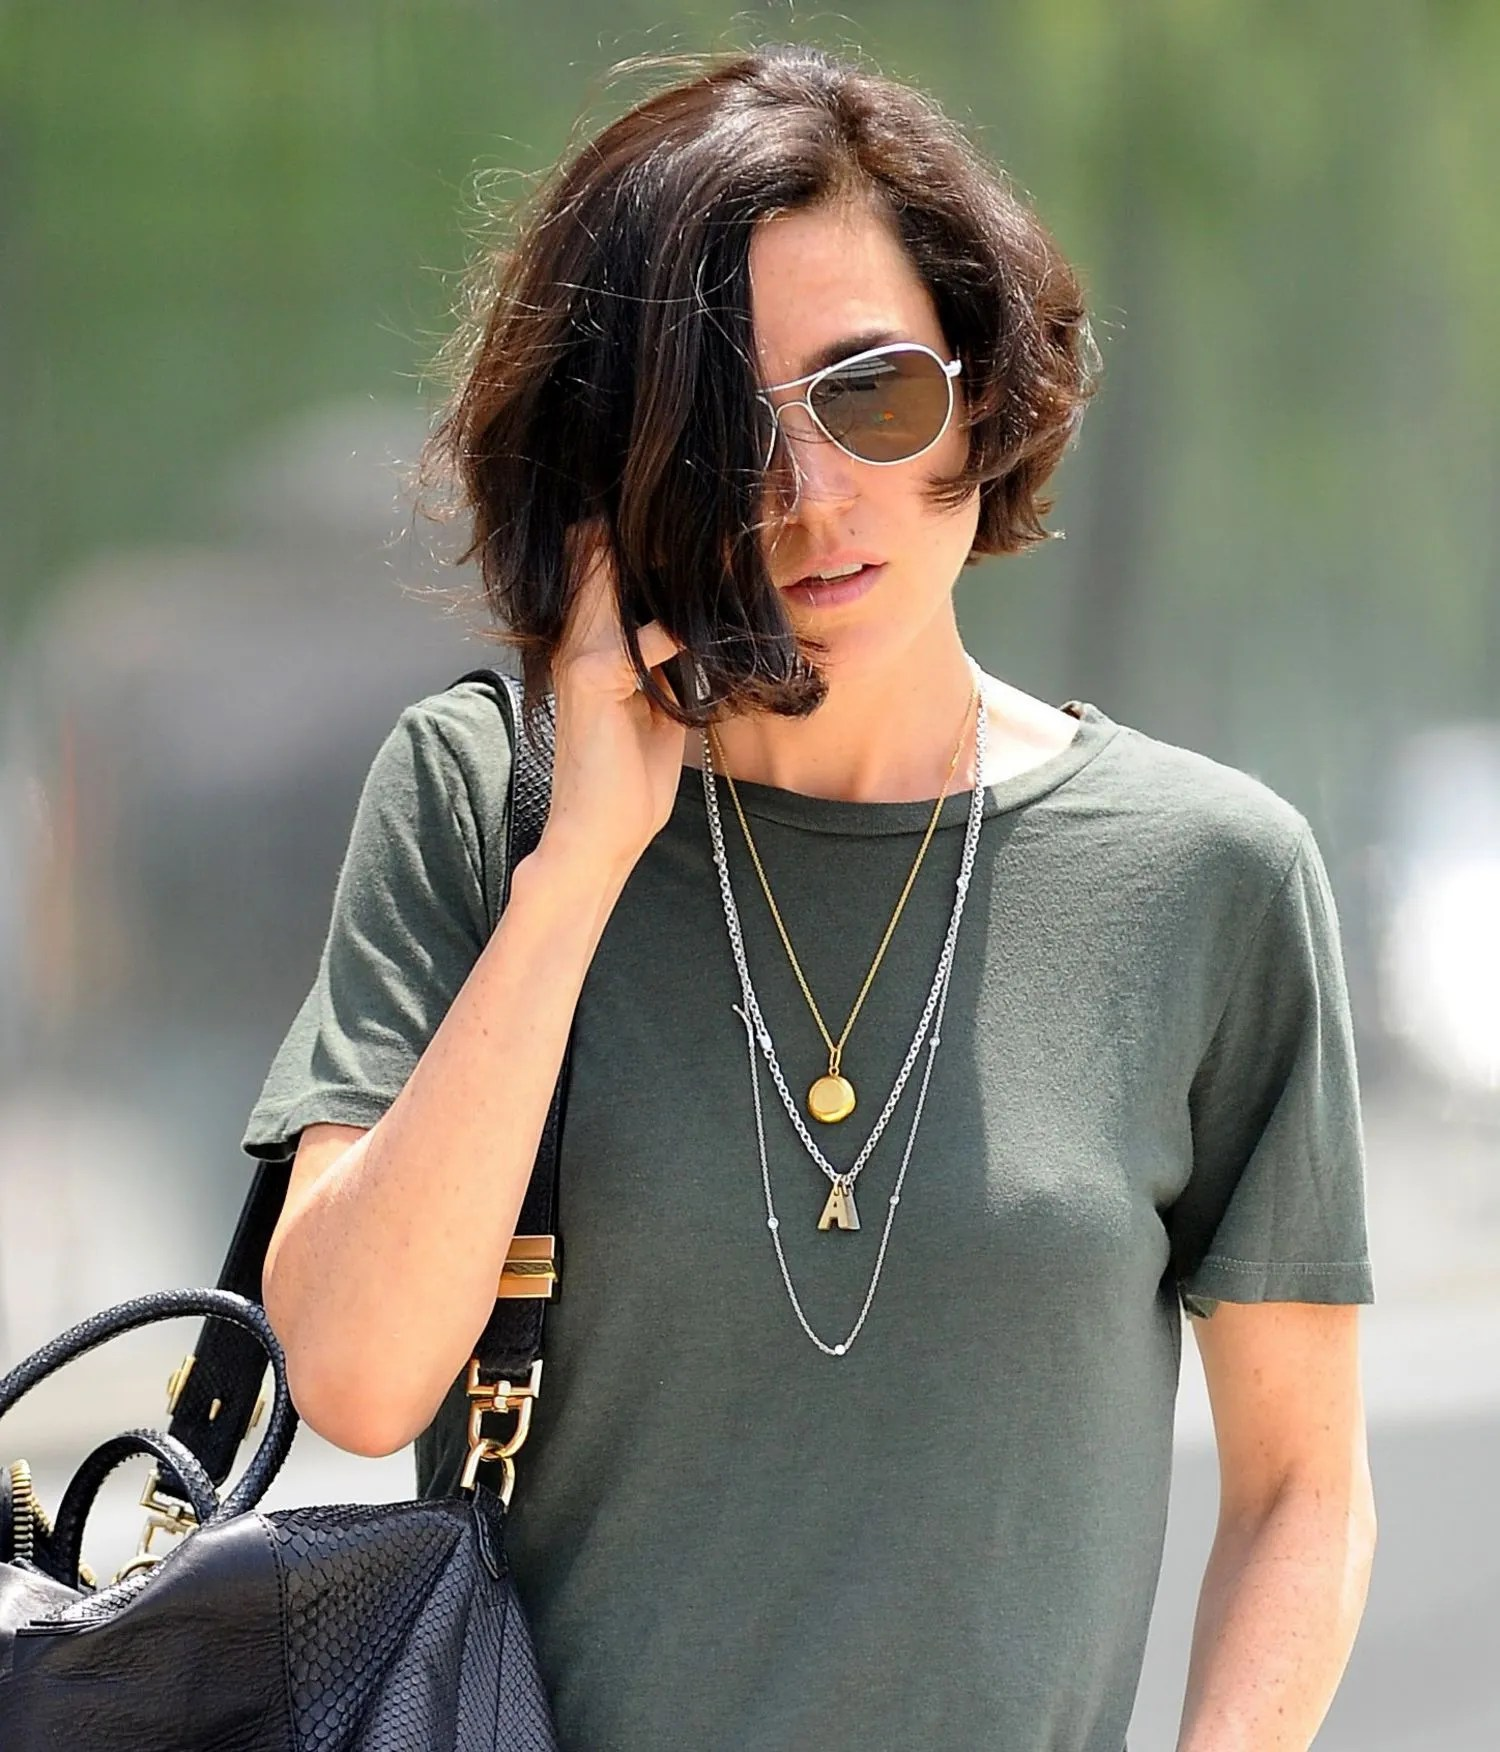 Jennifer Connelly Cut Off Her Hair What Do You Think